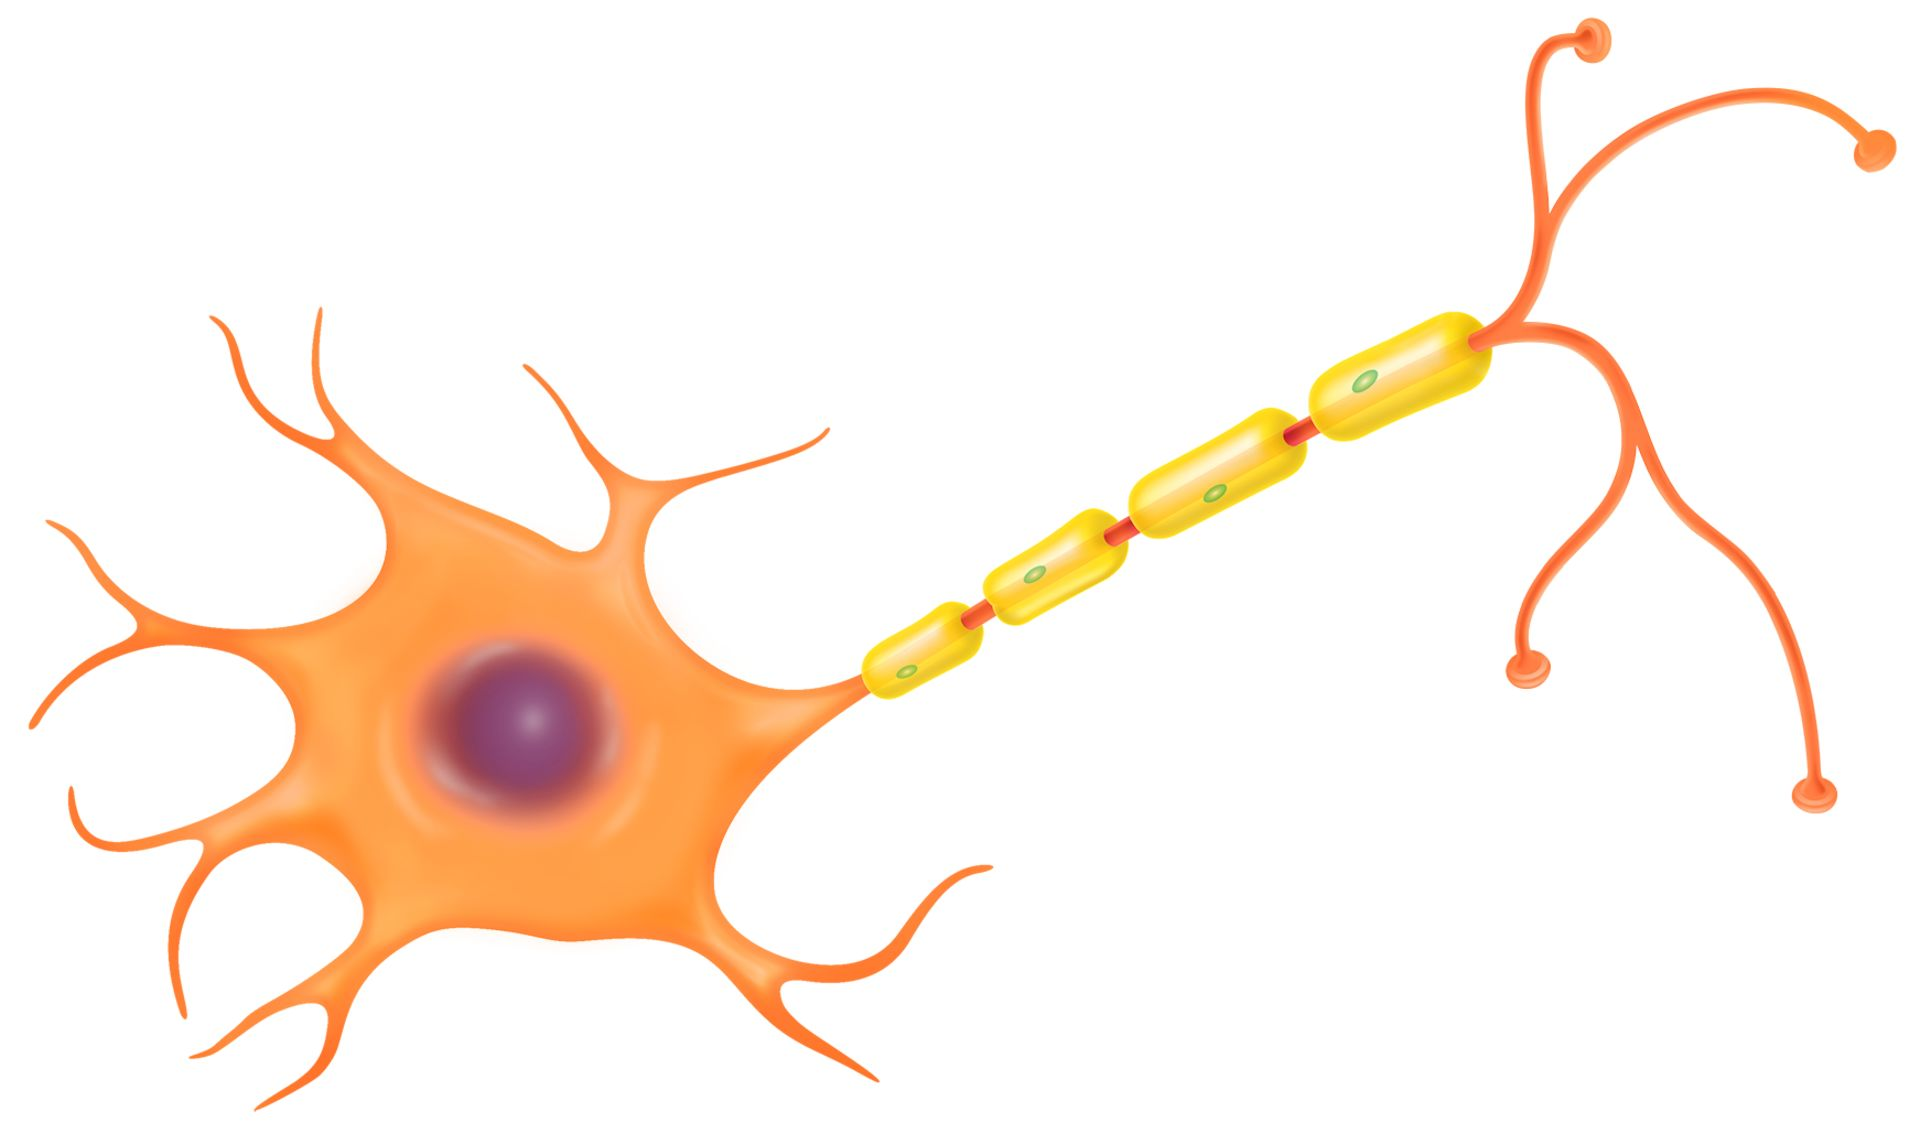 Nerve function dk find. Cell clipart cell diagram